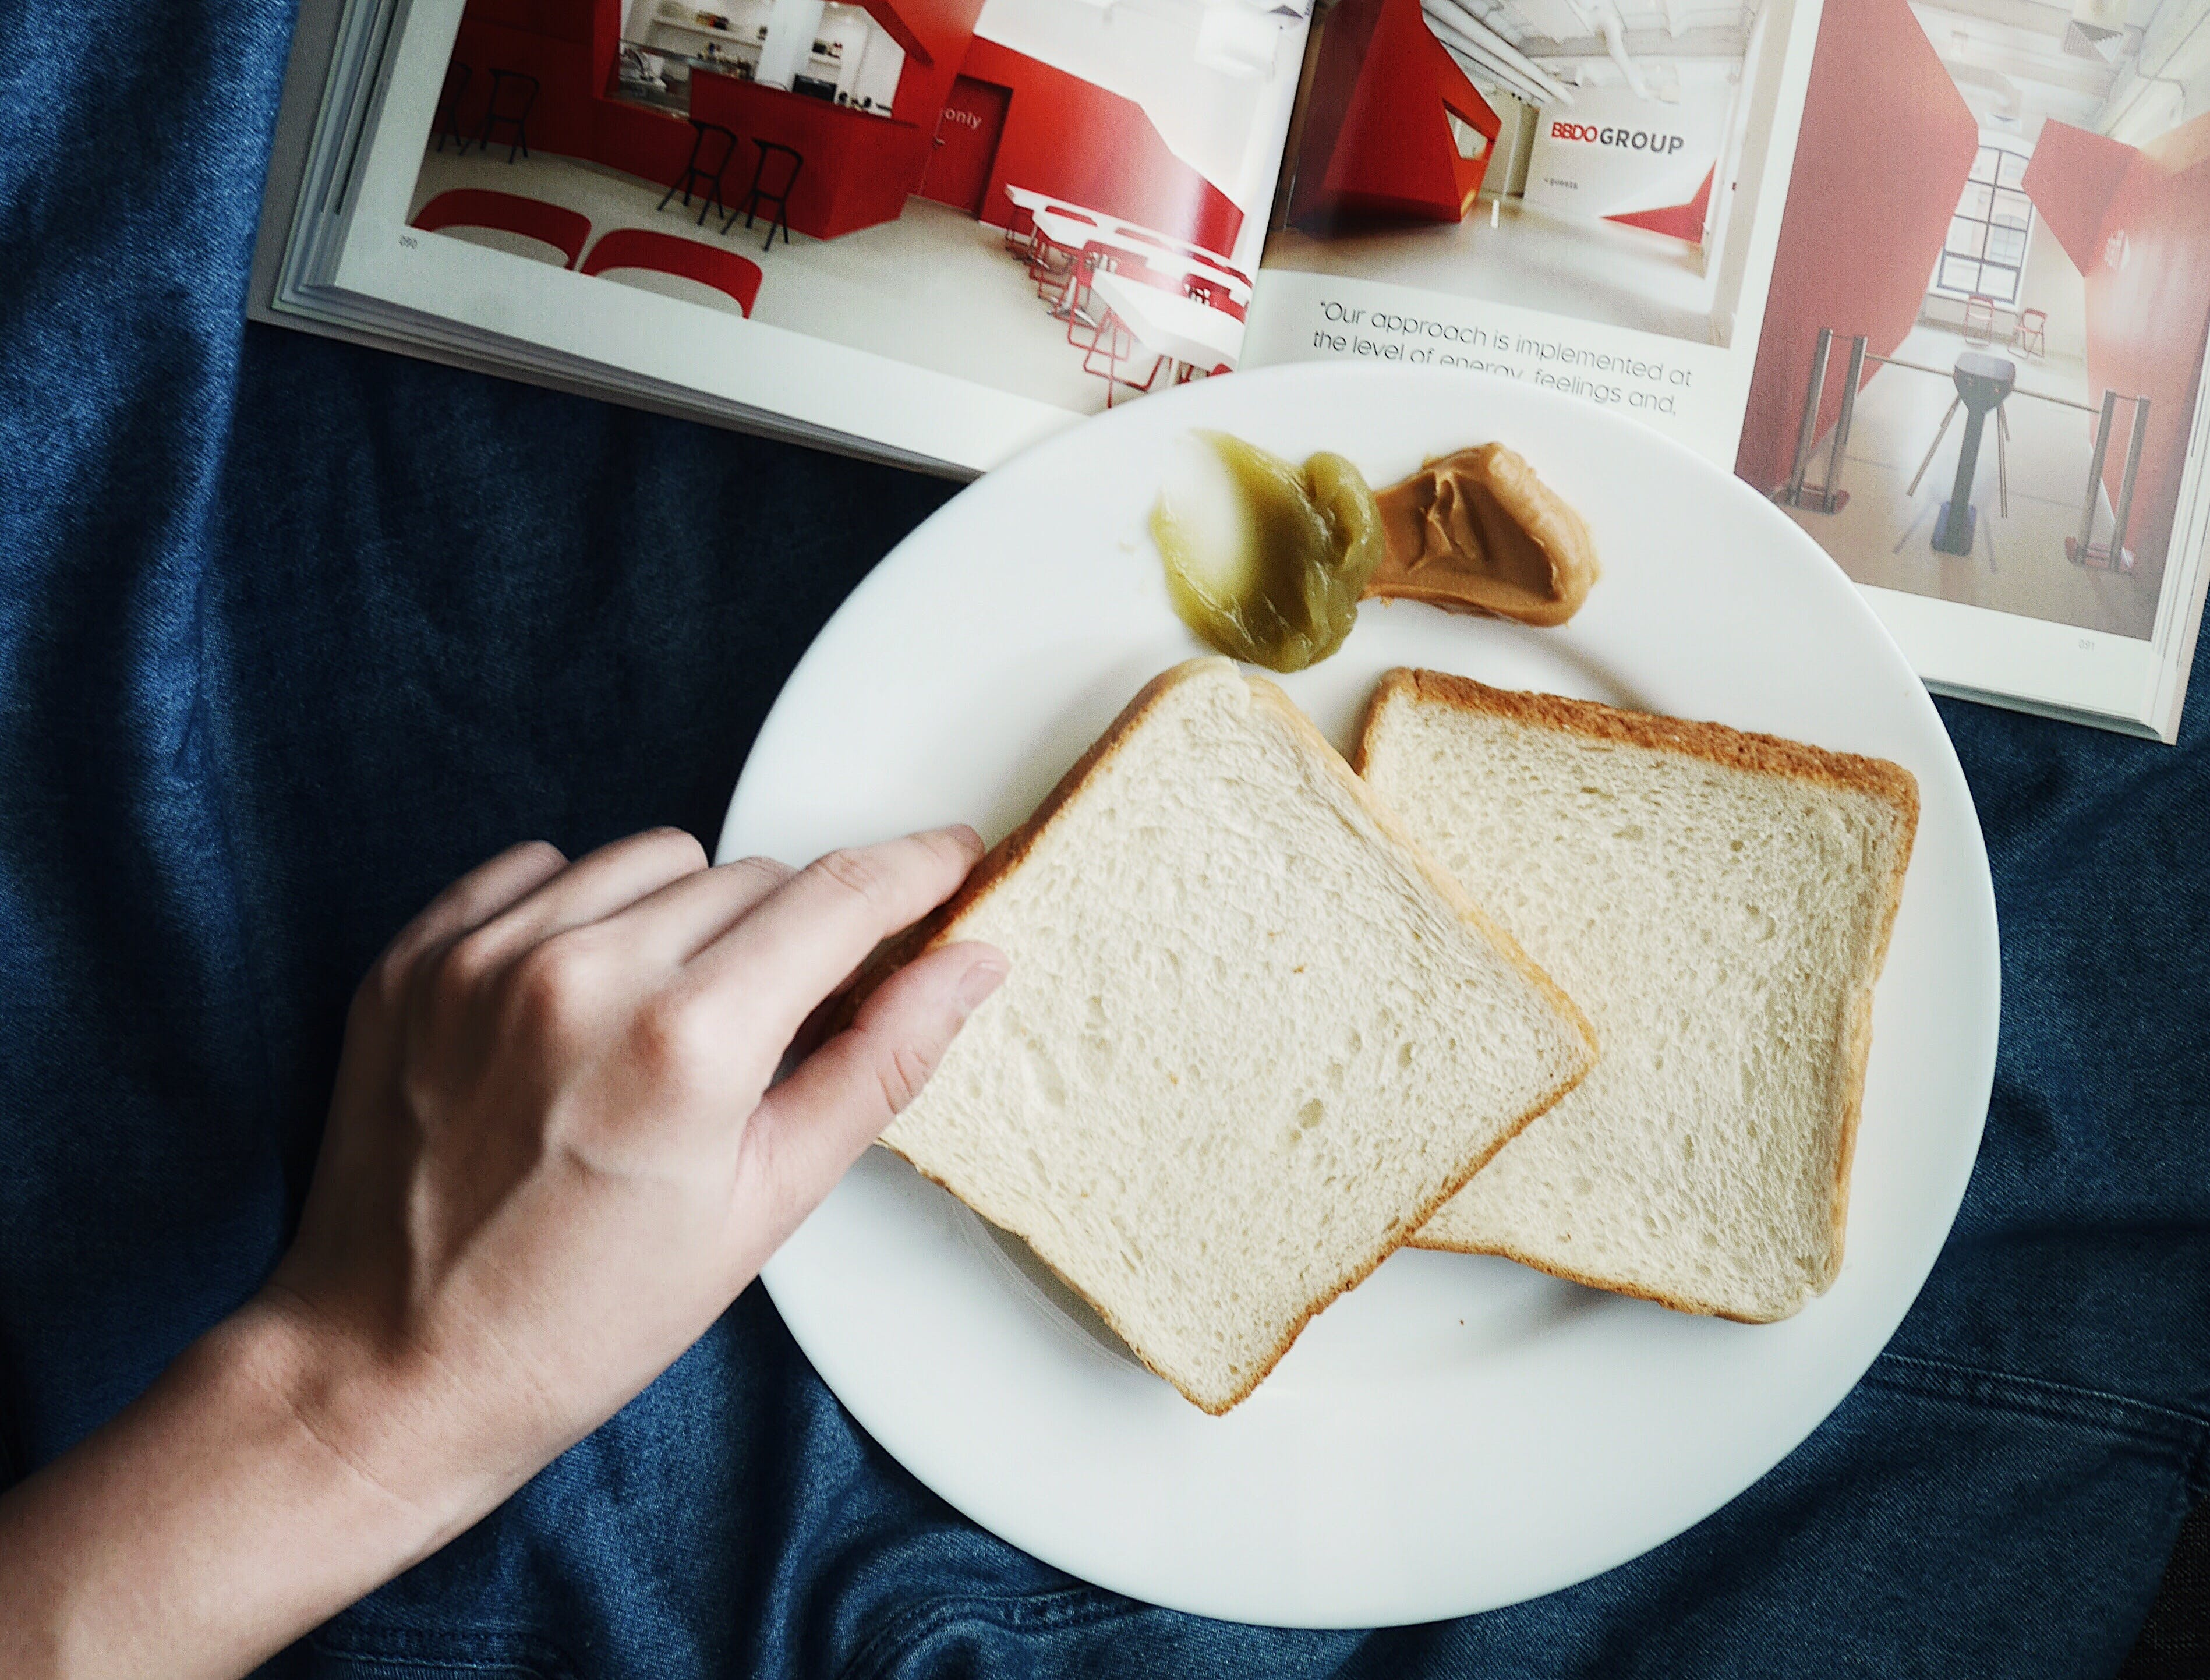 Person Touching the Bread on Plate